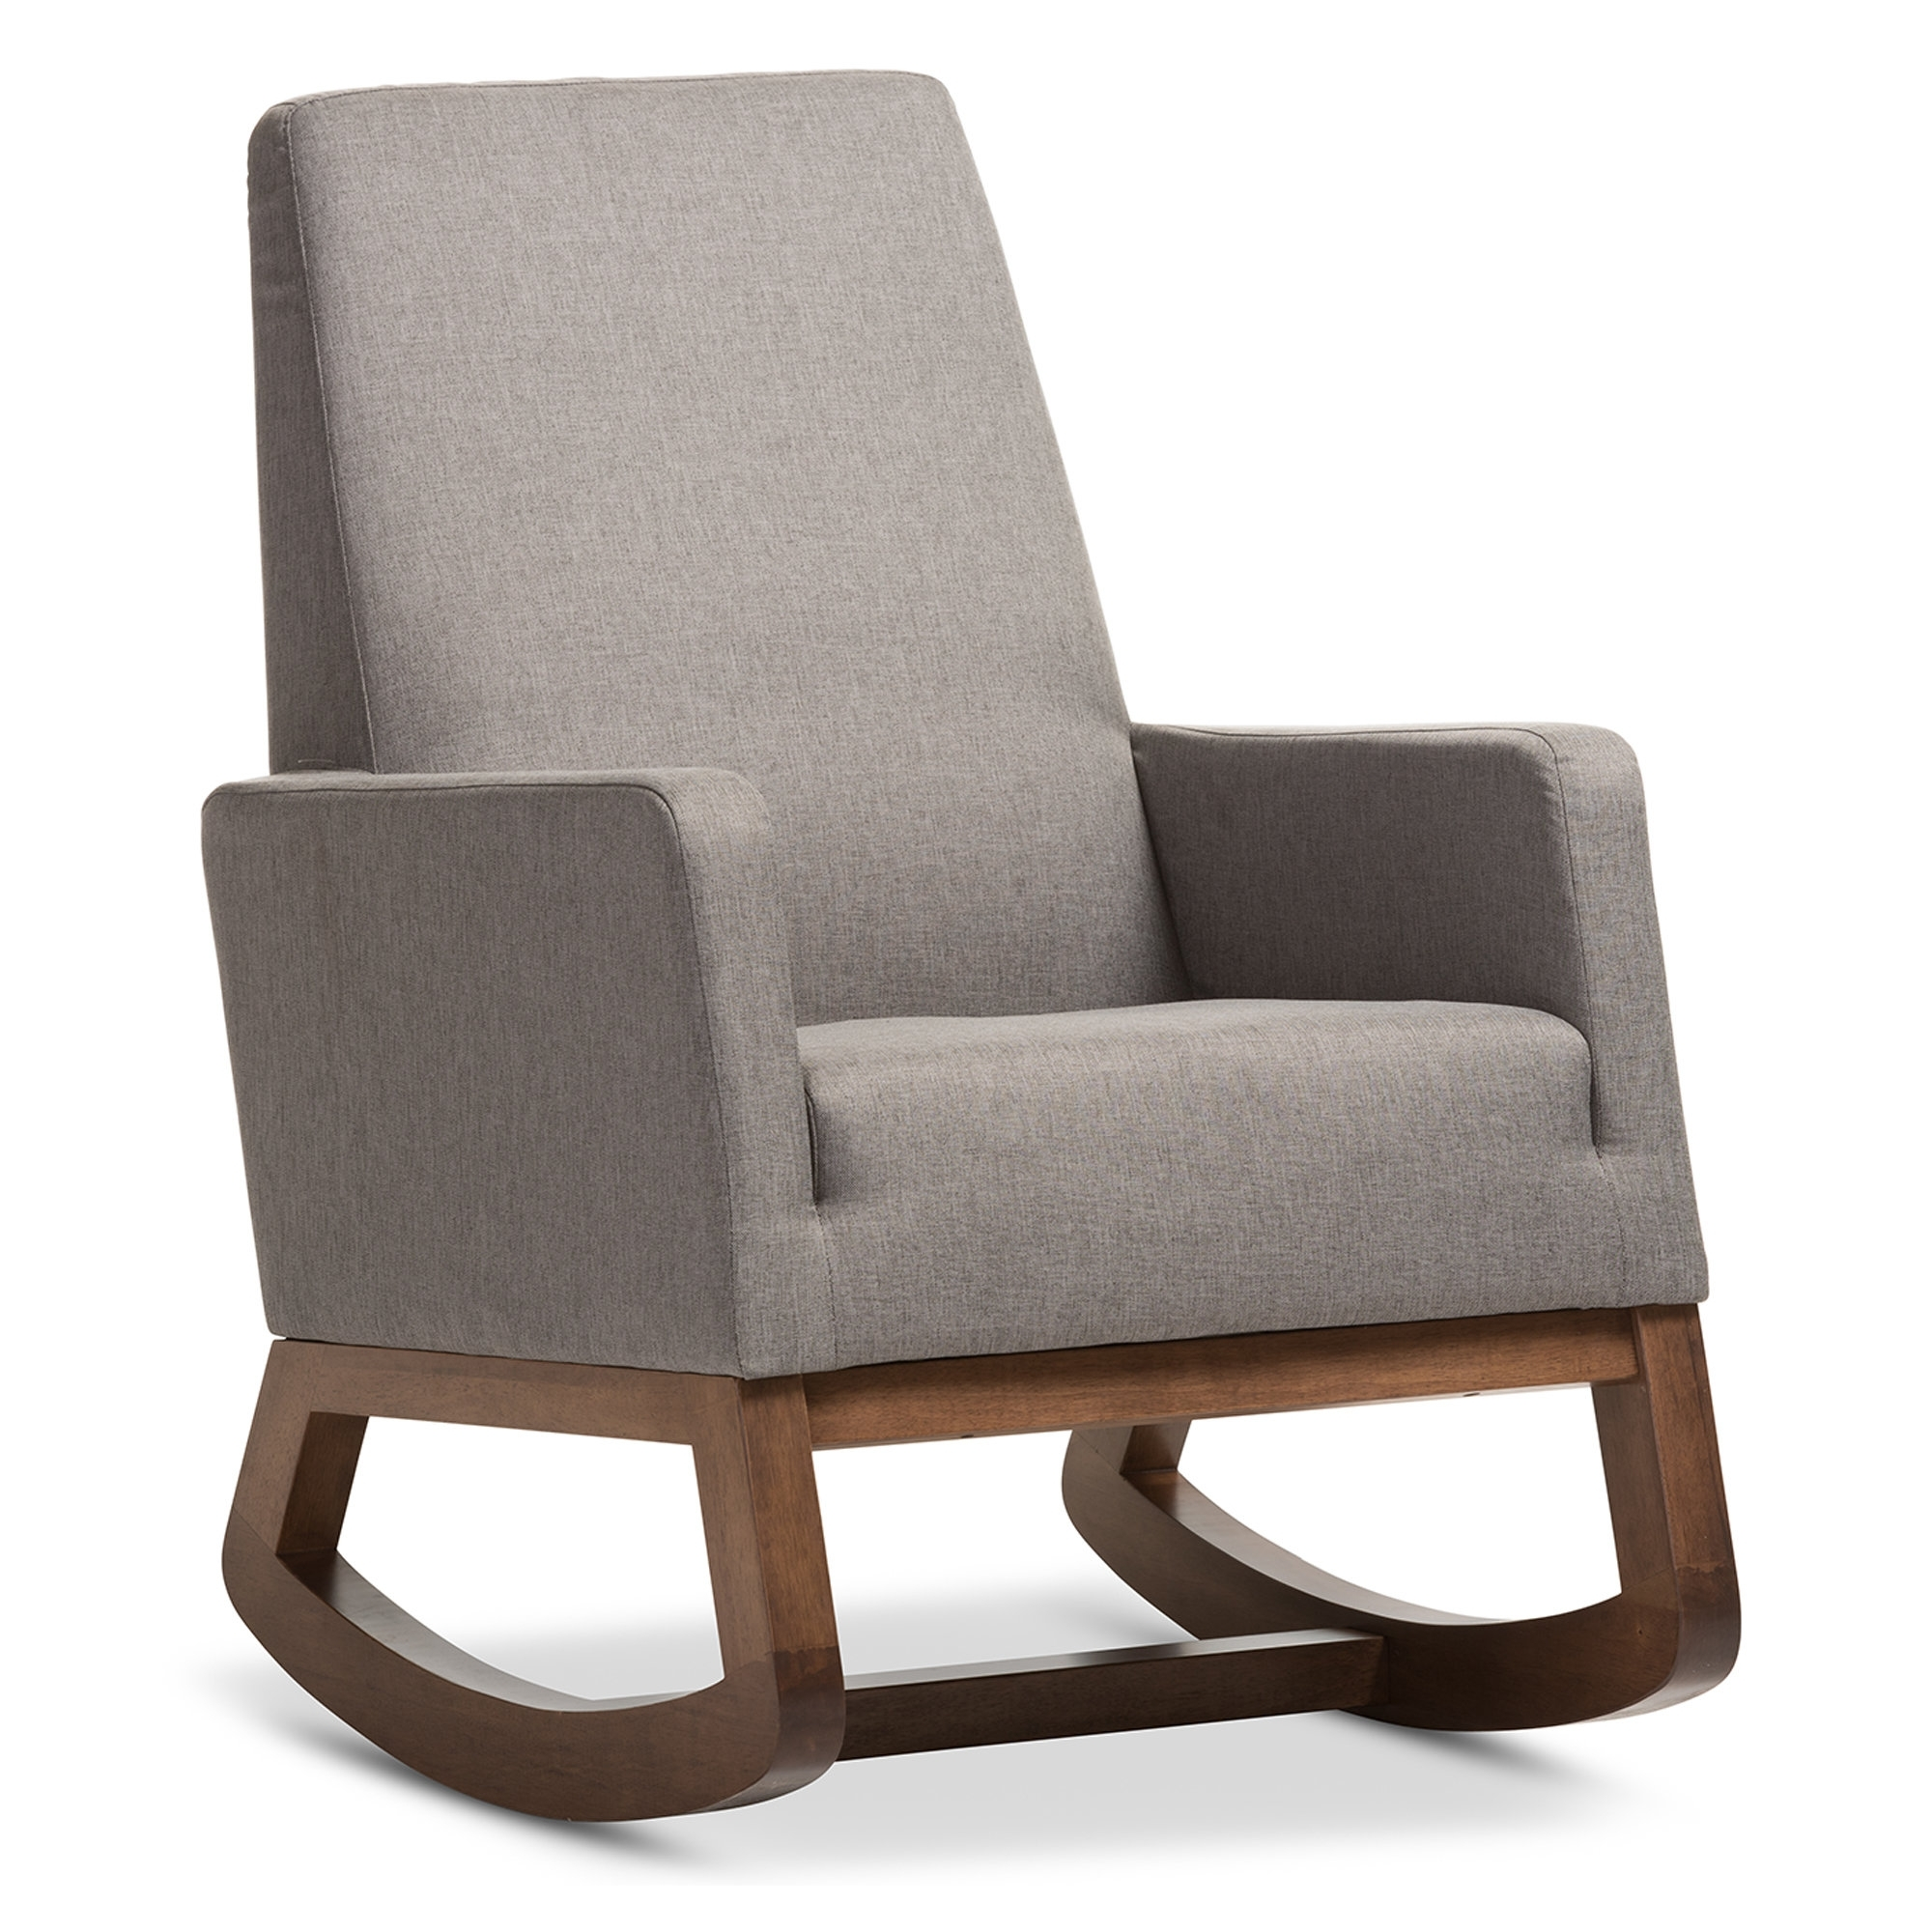 Preferred Rocking Chairs At Wayfair In Viv + Rae Nola Rocking Chair & Reviews (View 7 of 15)